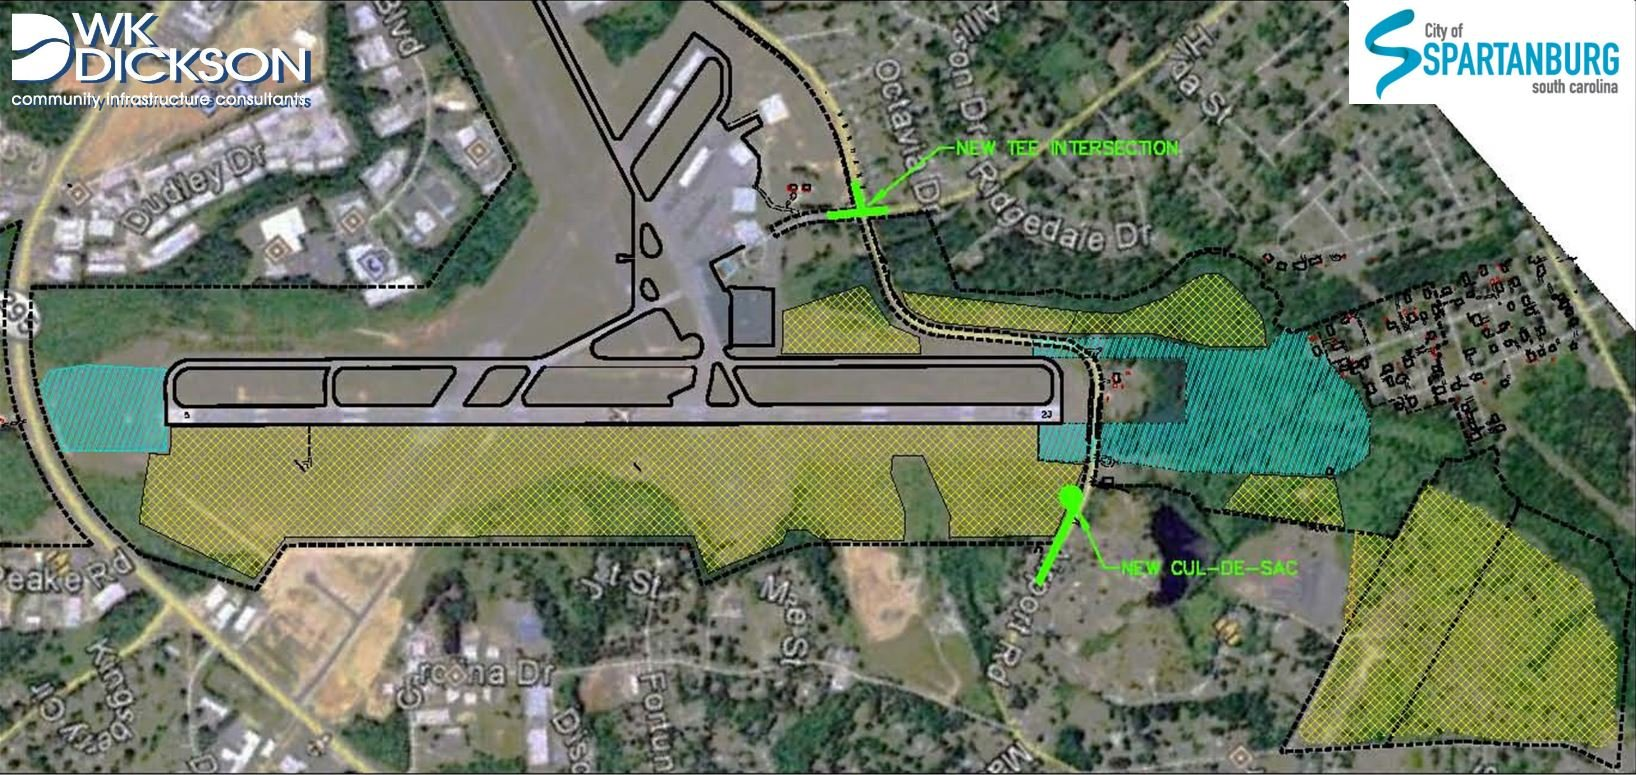 Map of airport runway expansion project area (Courtesy: City of Spartanburg)